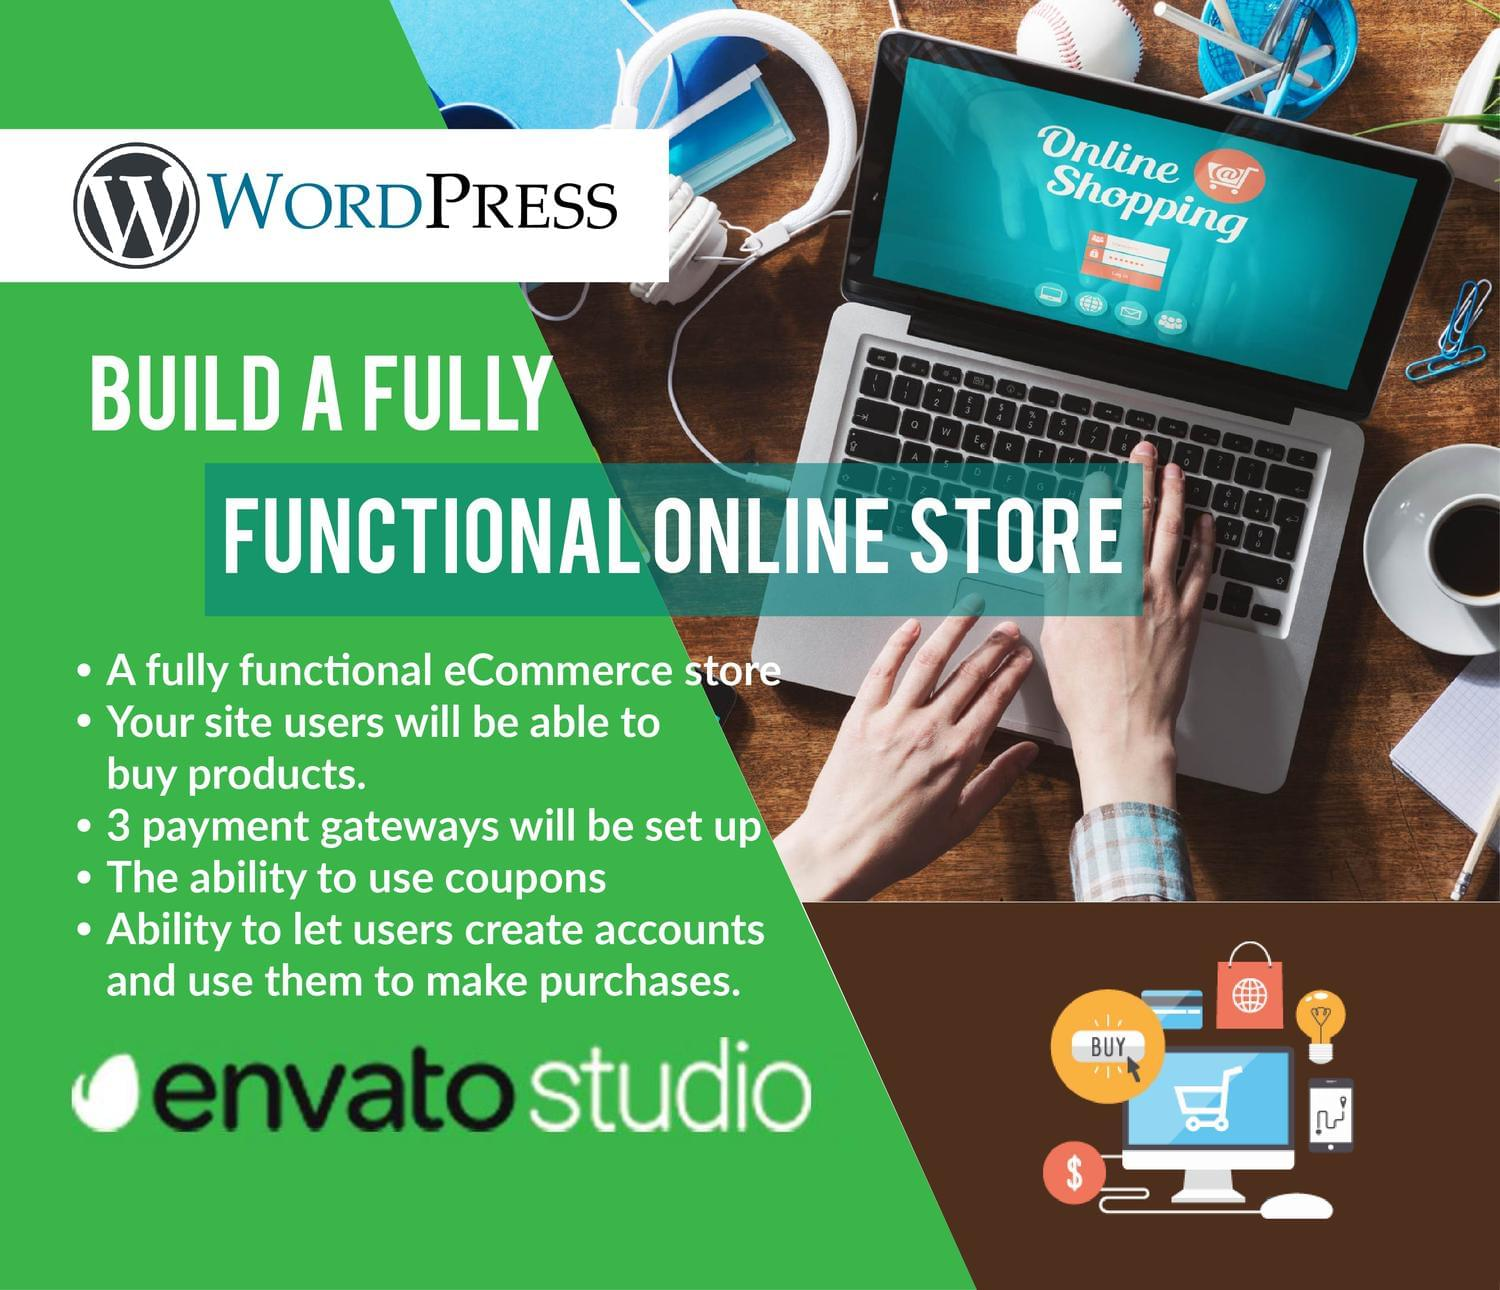 Build a Fully Functional Online Store by MuhammadHaroon - 116486